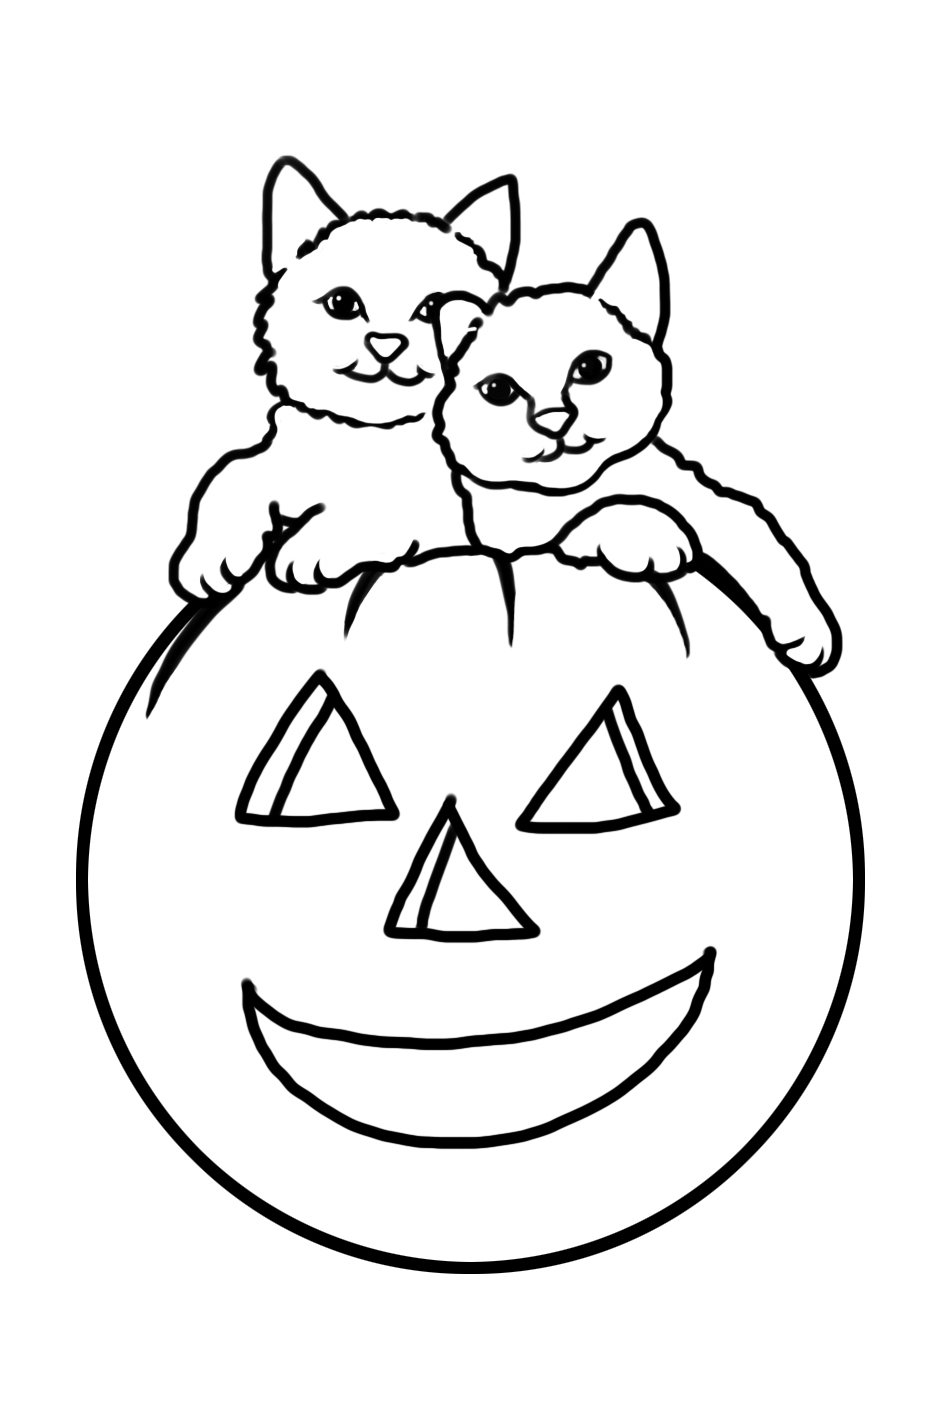 halloween cat coloring page top 25 free printable halloween cat coloring pages online halloween coloring page cat